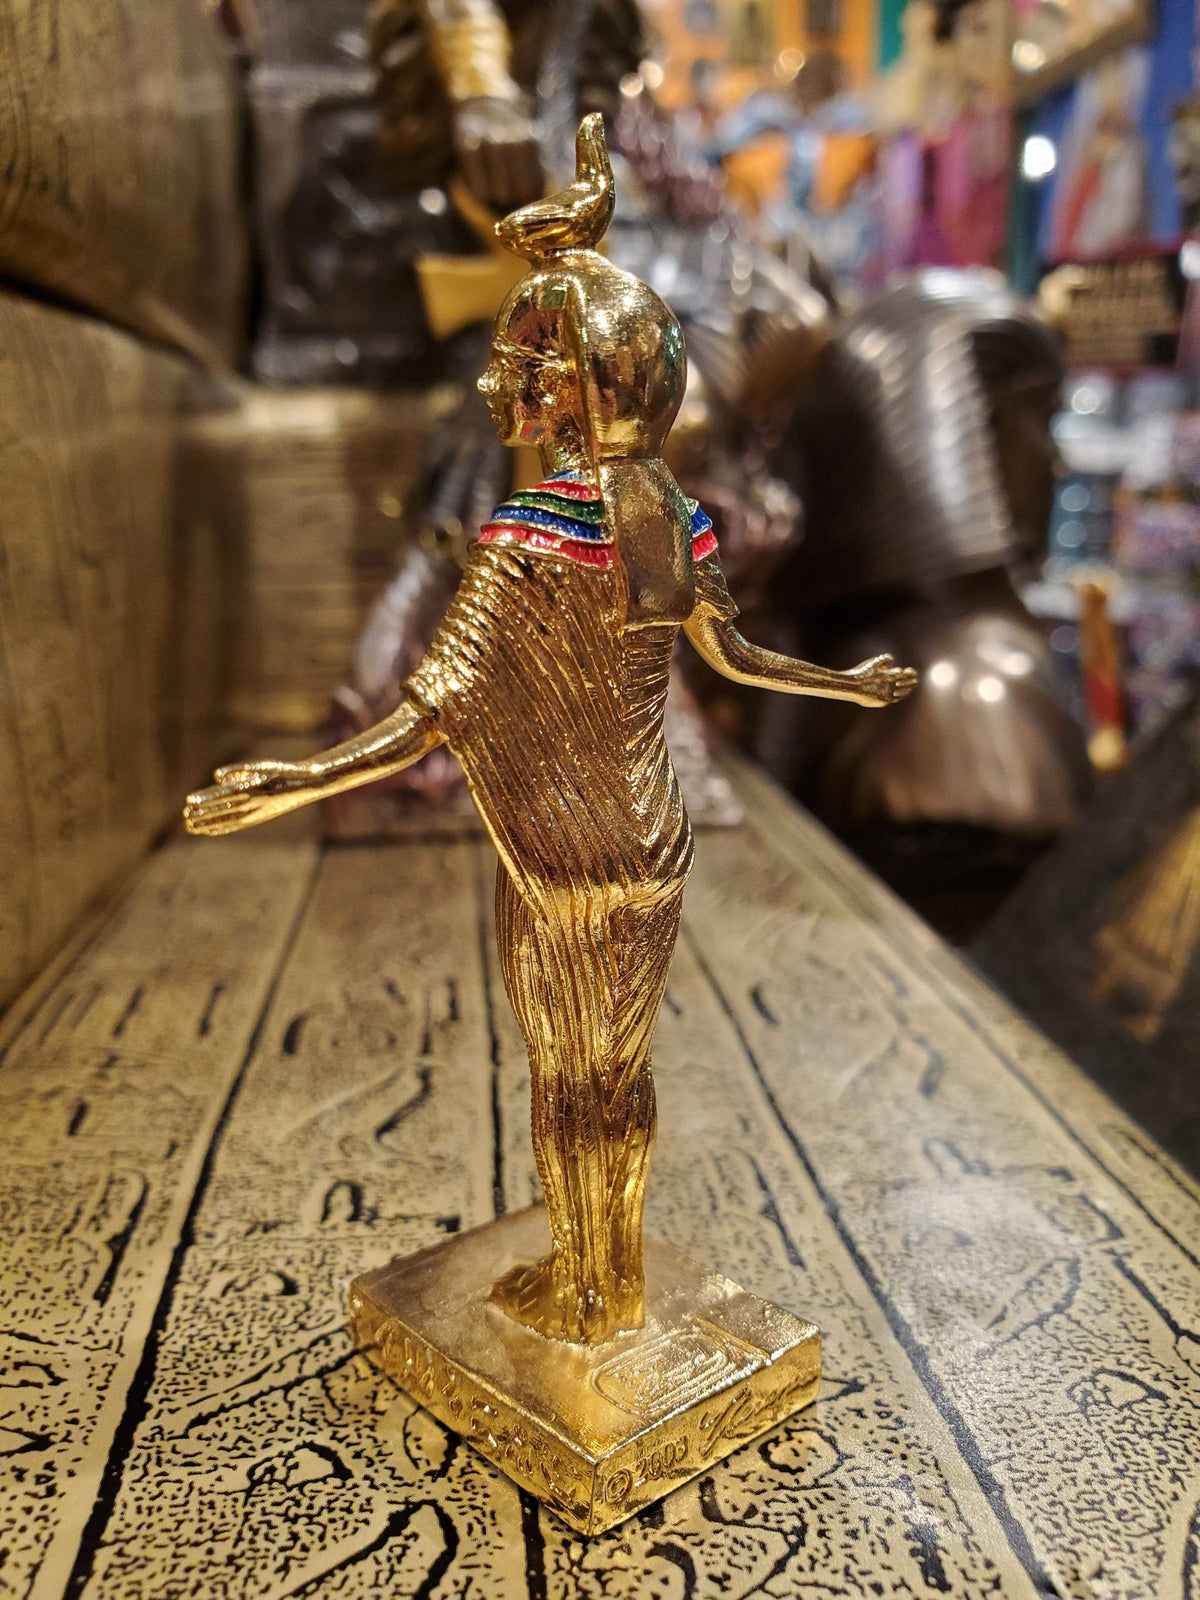 Small Gold Serket Figurine